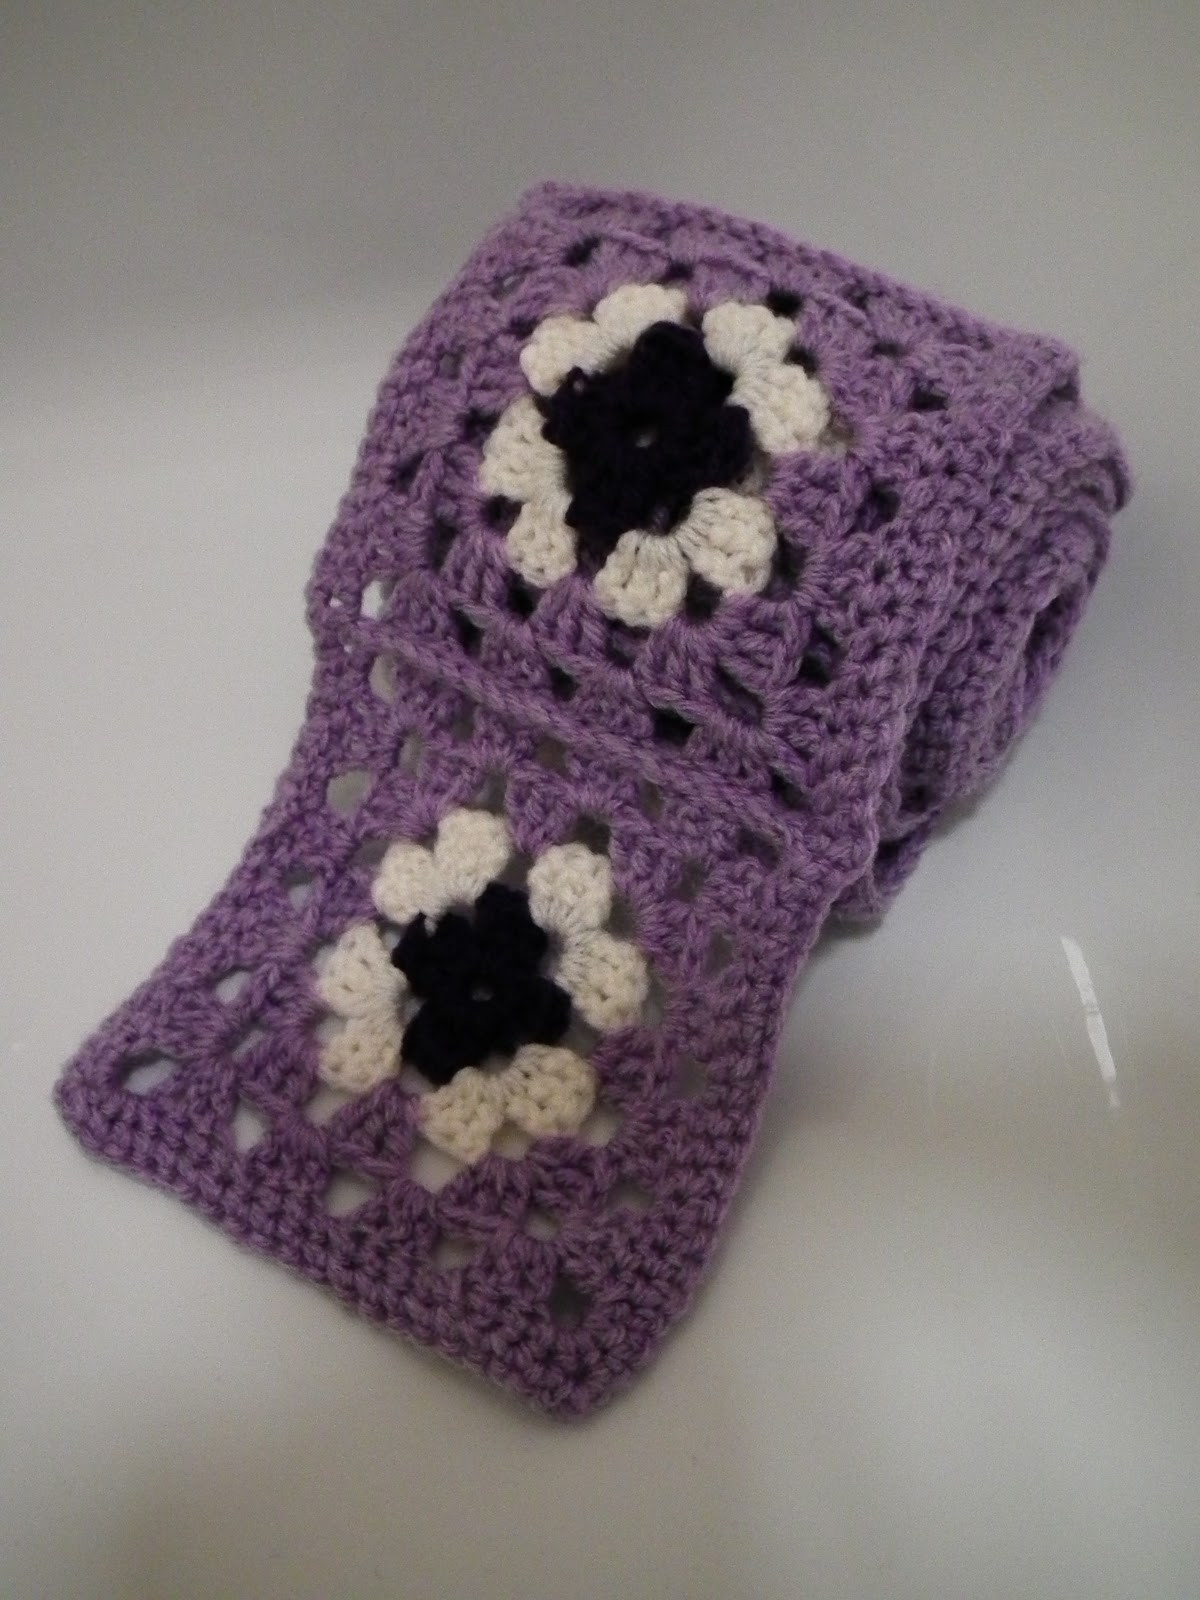 KnottedRose Reflections granny square scarf